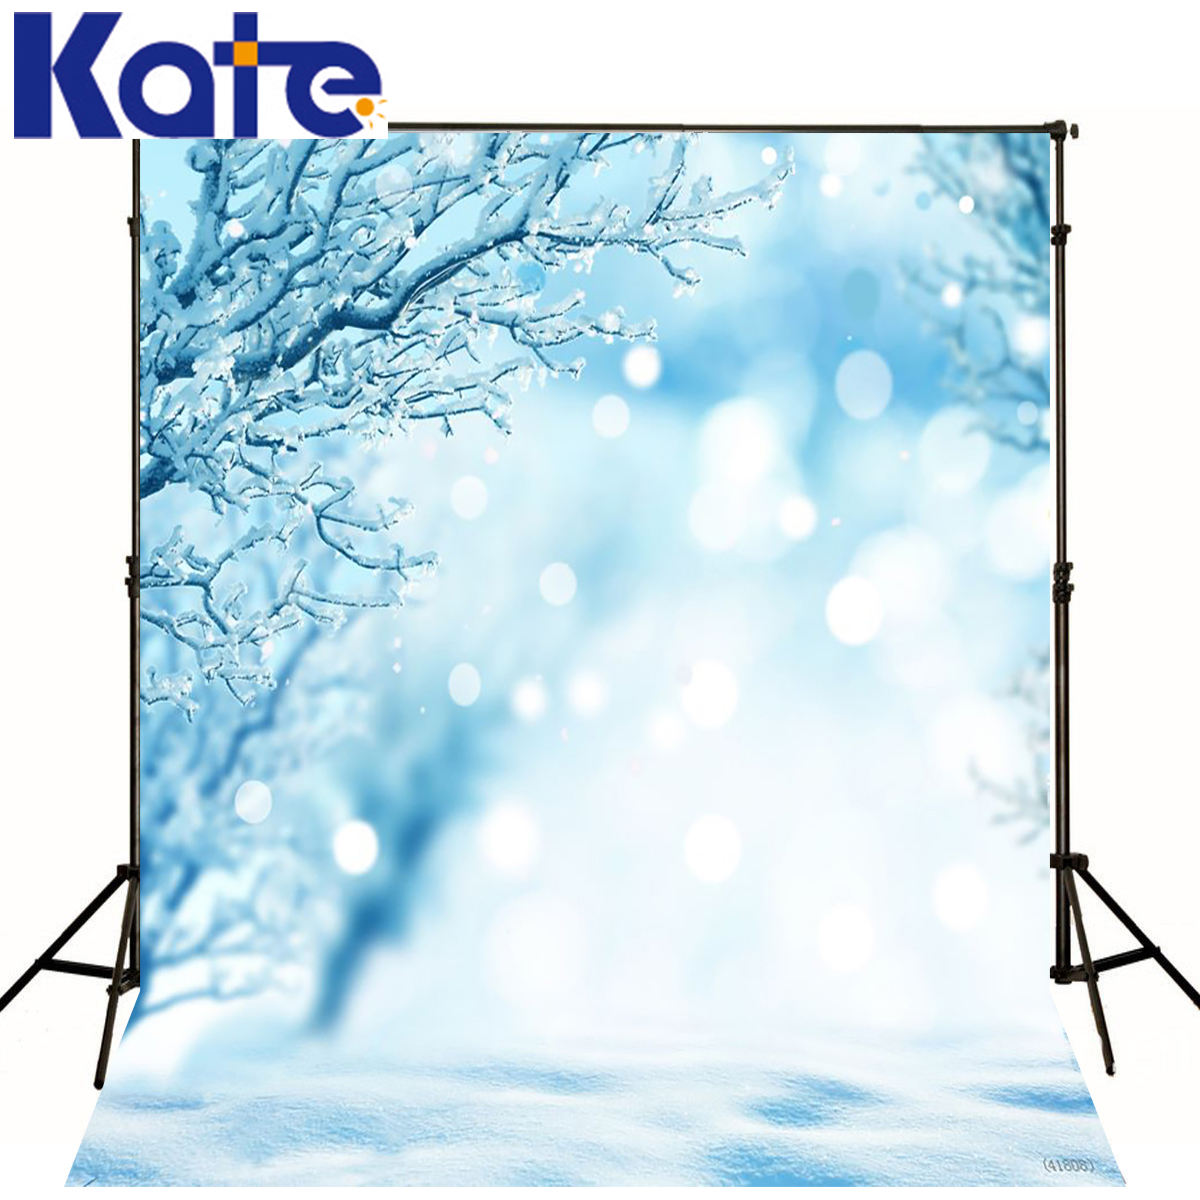 Kate Background Fotografia Blue World Snow In Branch Scenery Backdrops Spot Snow Floor Photography Background For Studio